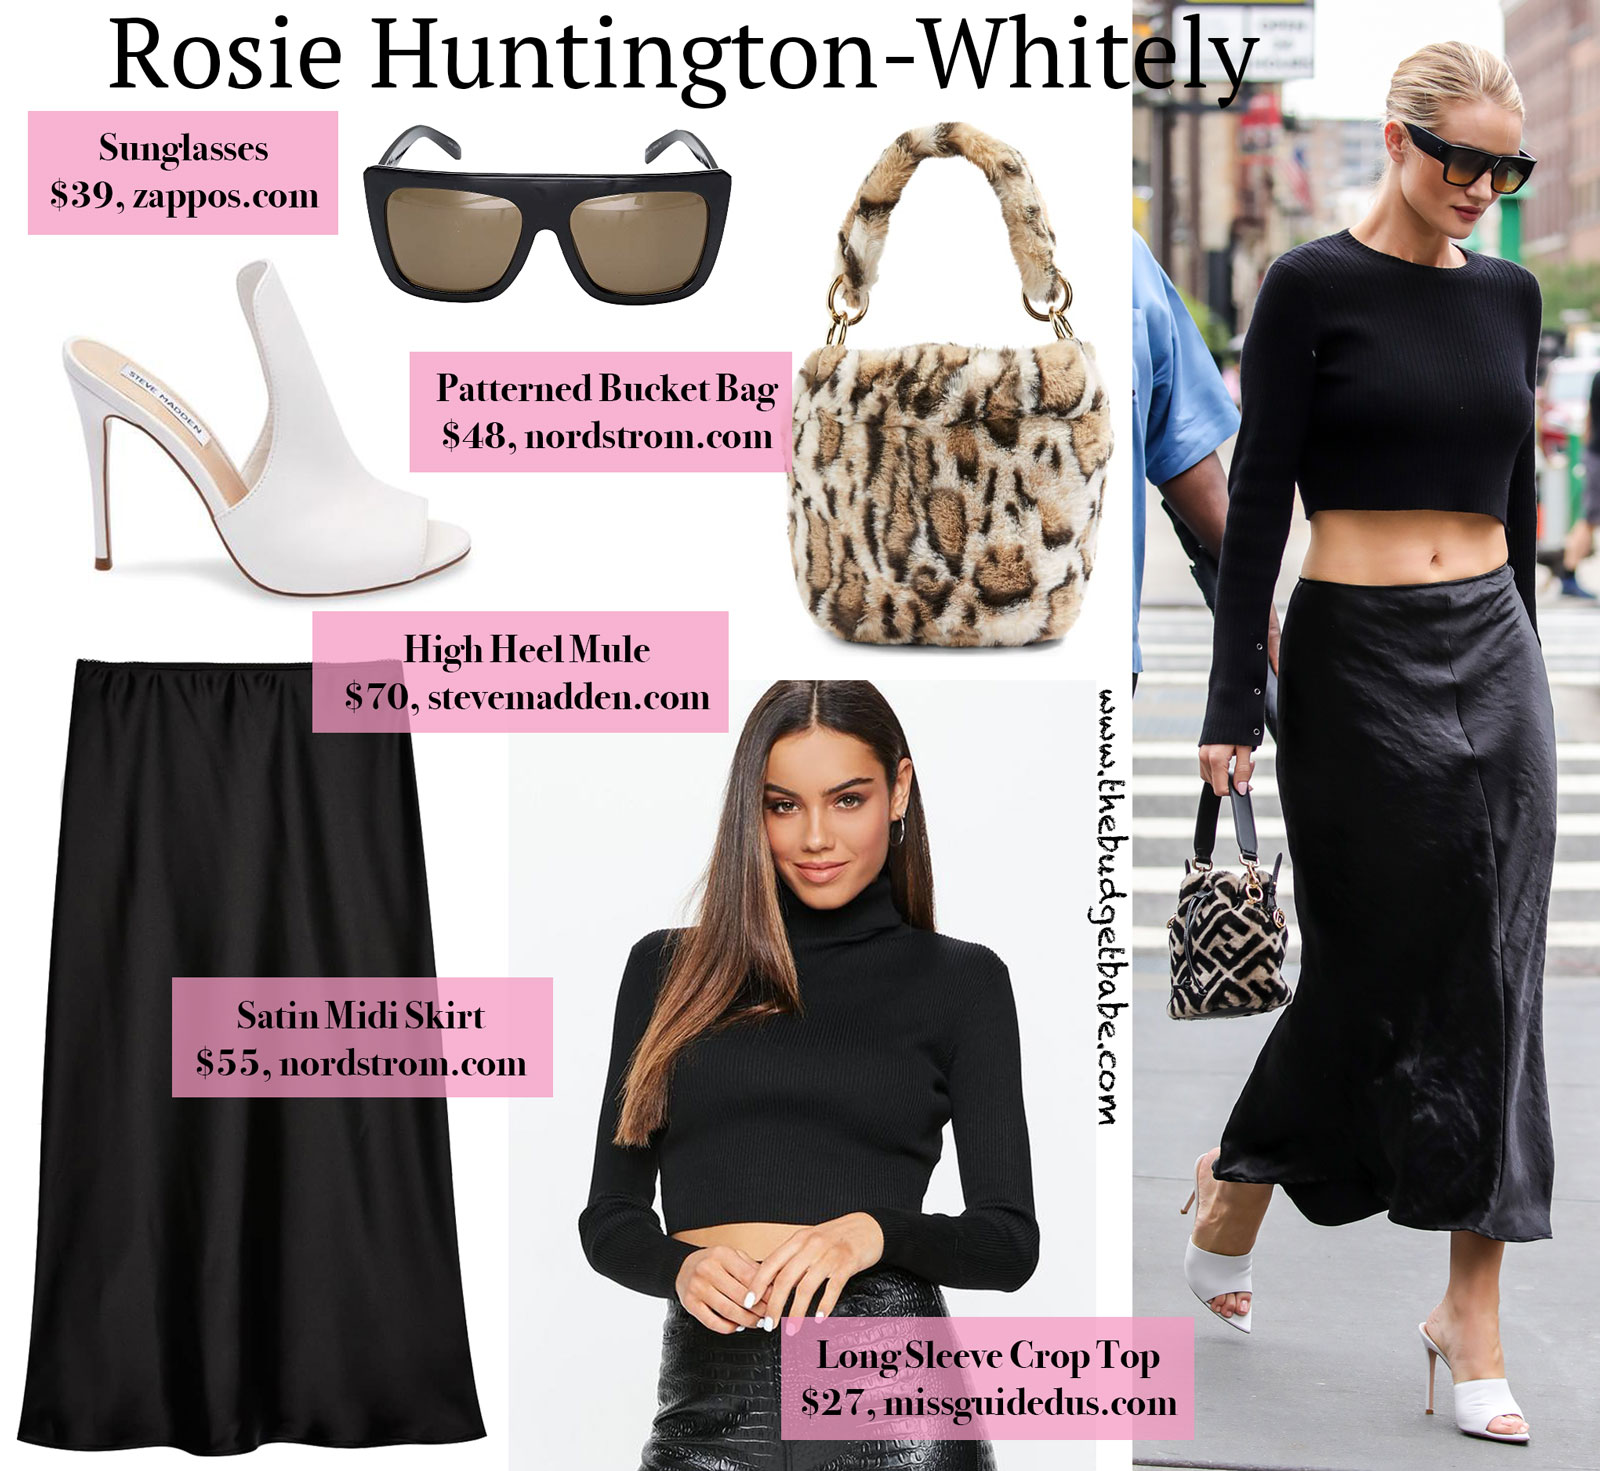 Rosie Huntington-Whitely Crop Top, Skirt, Fendi Bag Look for Less